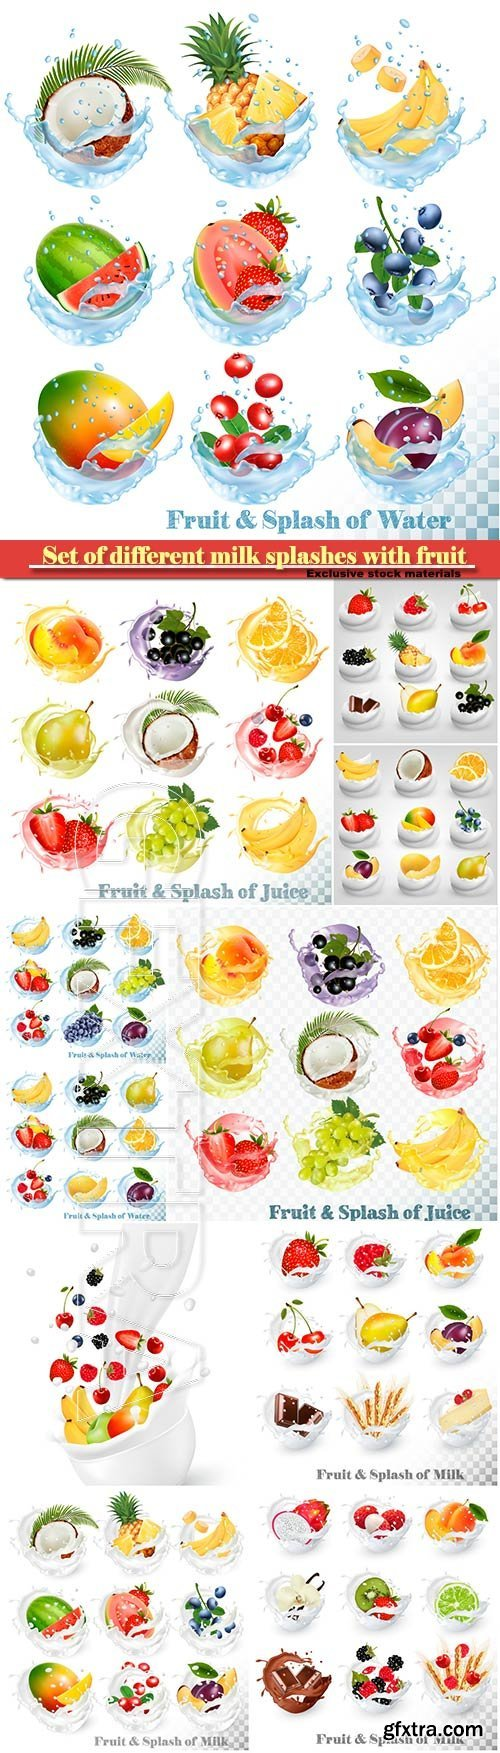 Set of different milk splashes with fruit, nuts and berries, strawberry, raspberry, blackberry, apricot, blueberry, lime, kiwi, vanilla, dragonfruit